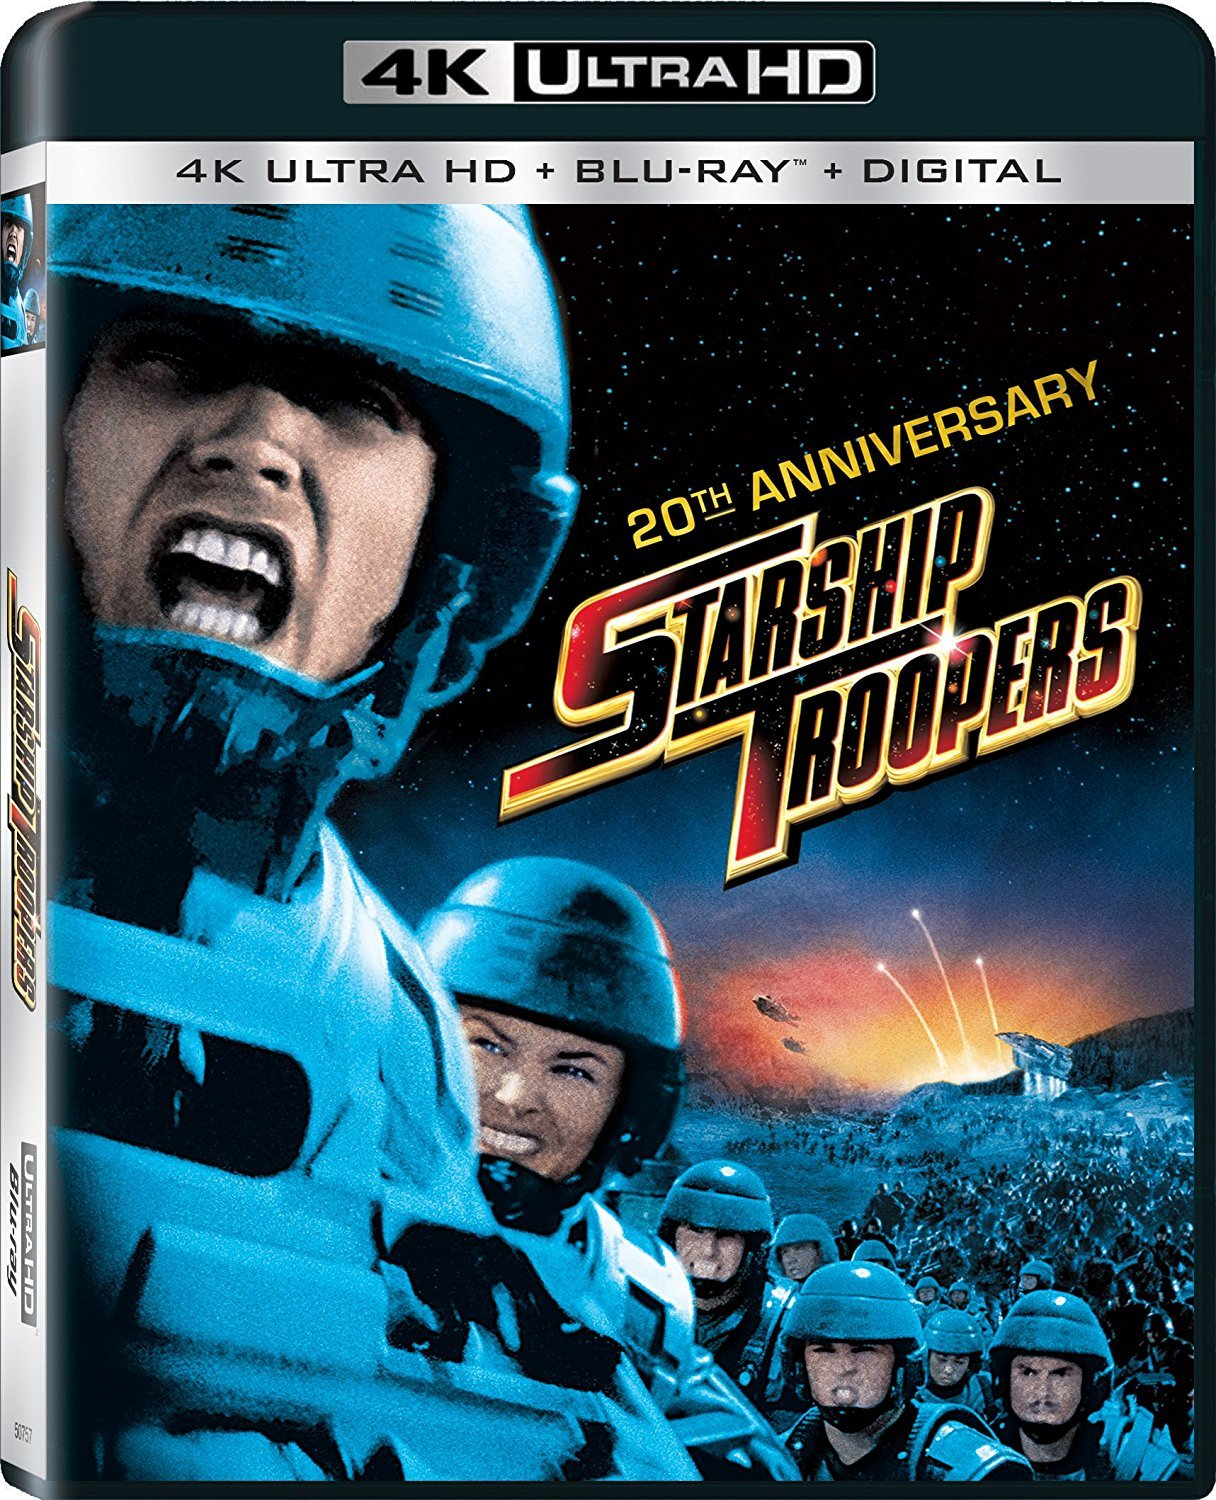 Starship Troopers 4K (1997) UHD Ultra HD Blu-ray